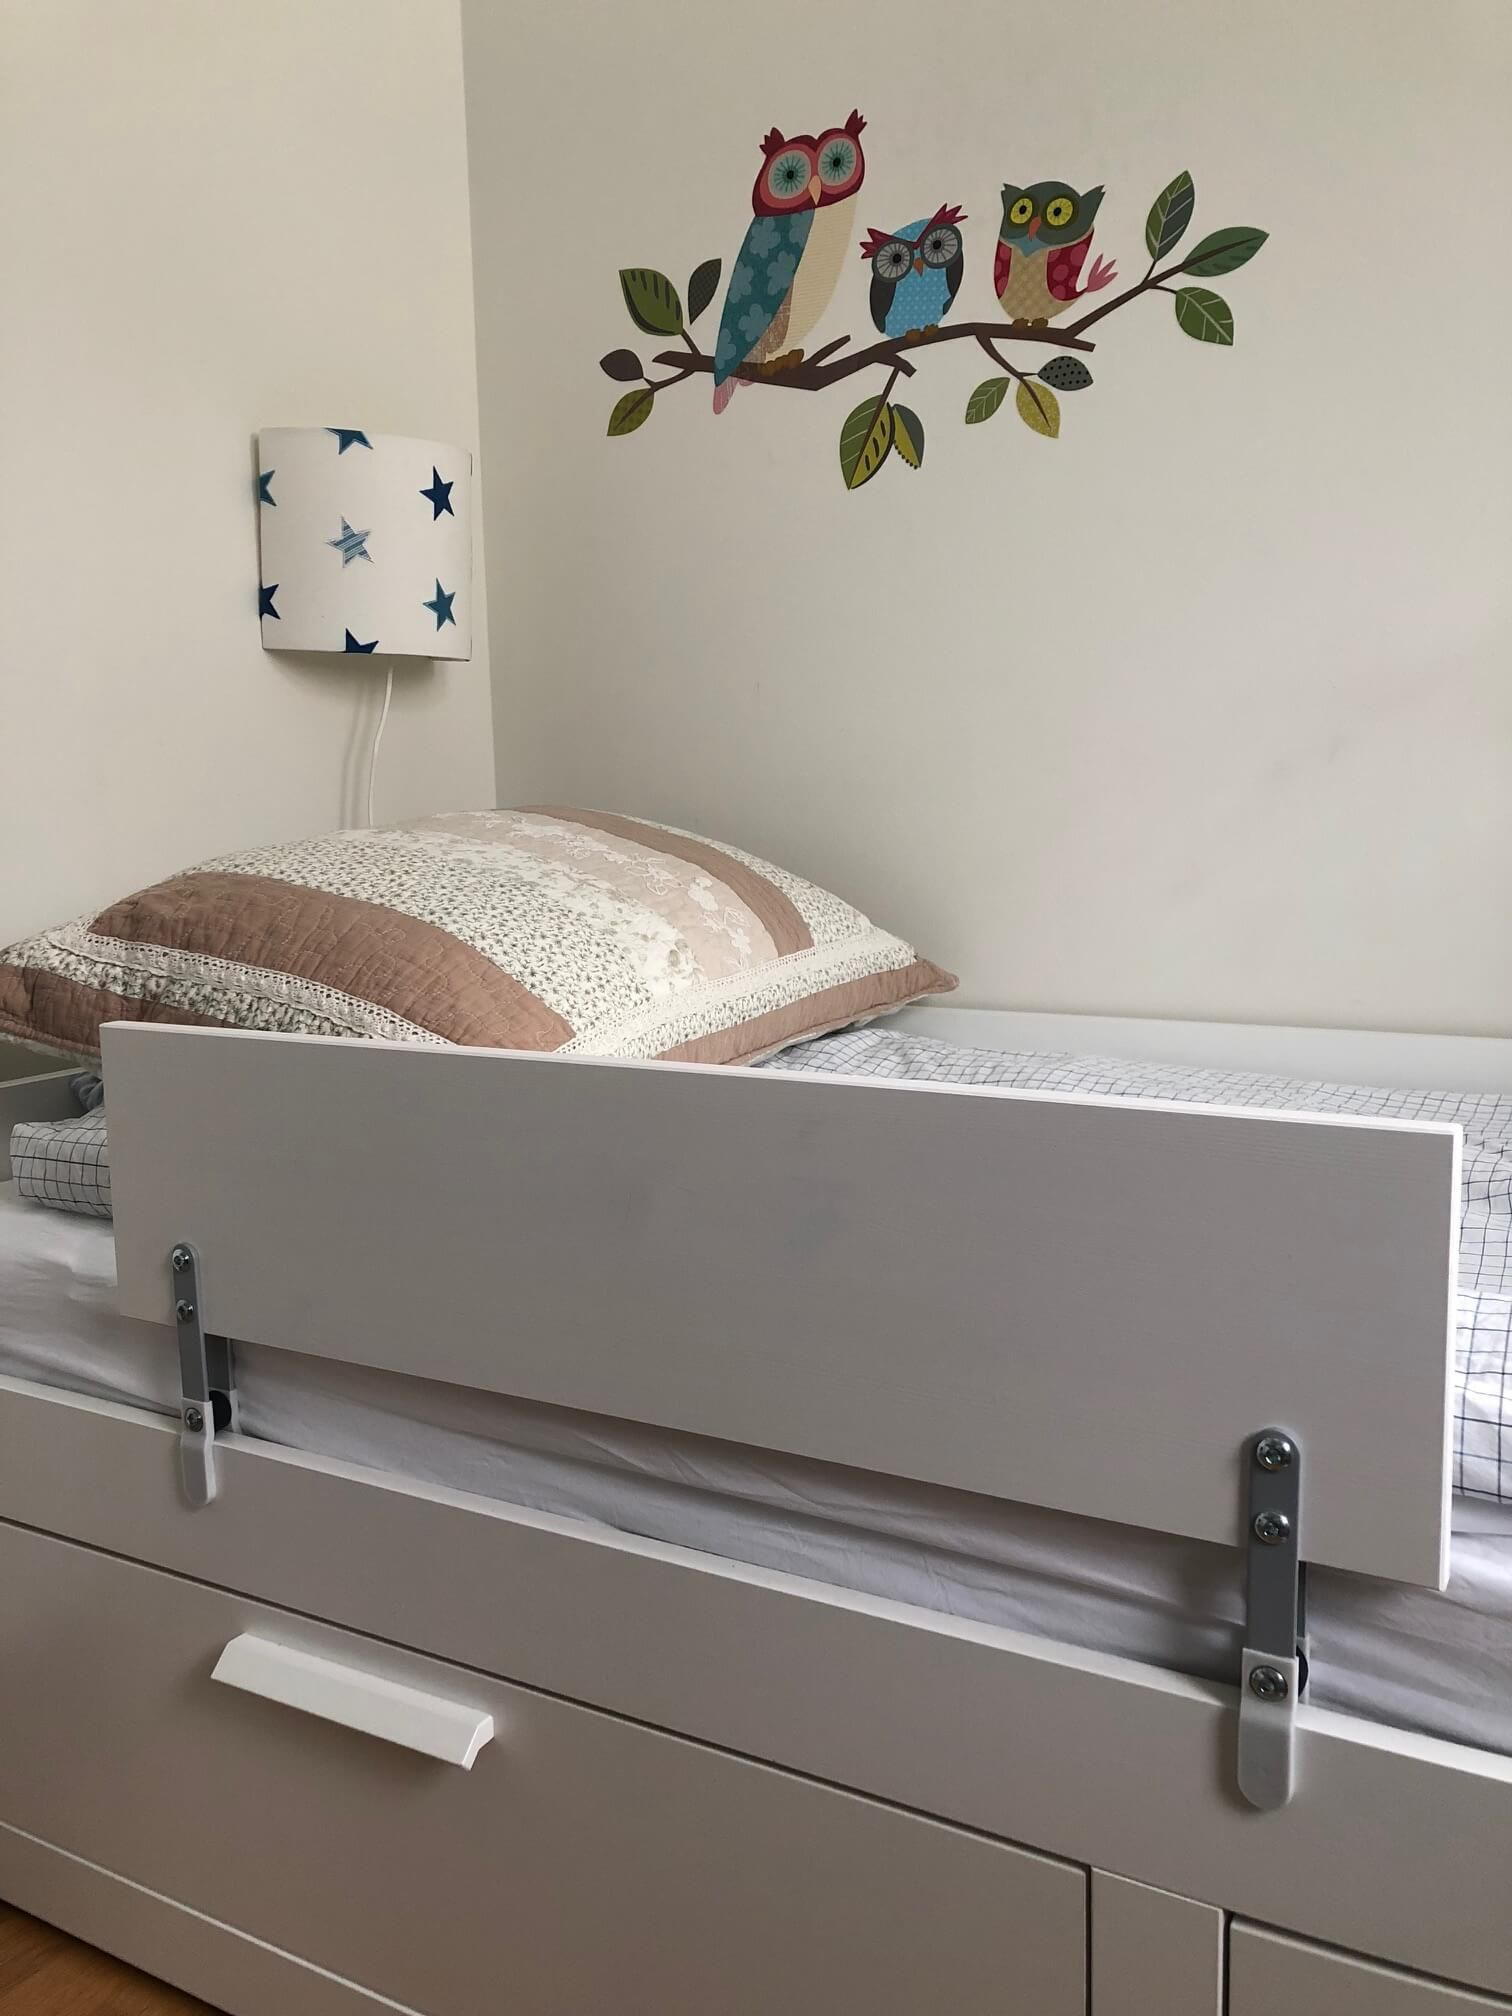 This Guard Rail Will Stop Your Kid From Rolling Off The Bed Ikea Hackers Diy Toddler Bed Ikea Bed Bed Rails For Toddlers